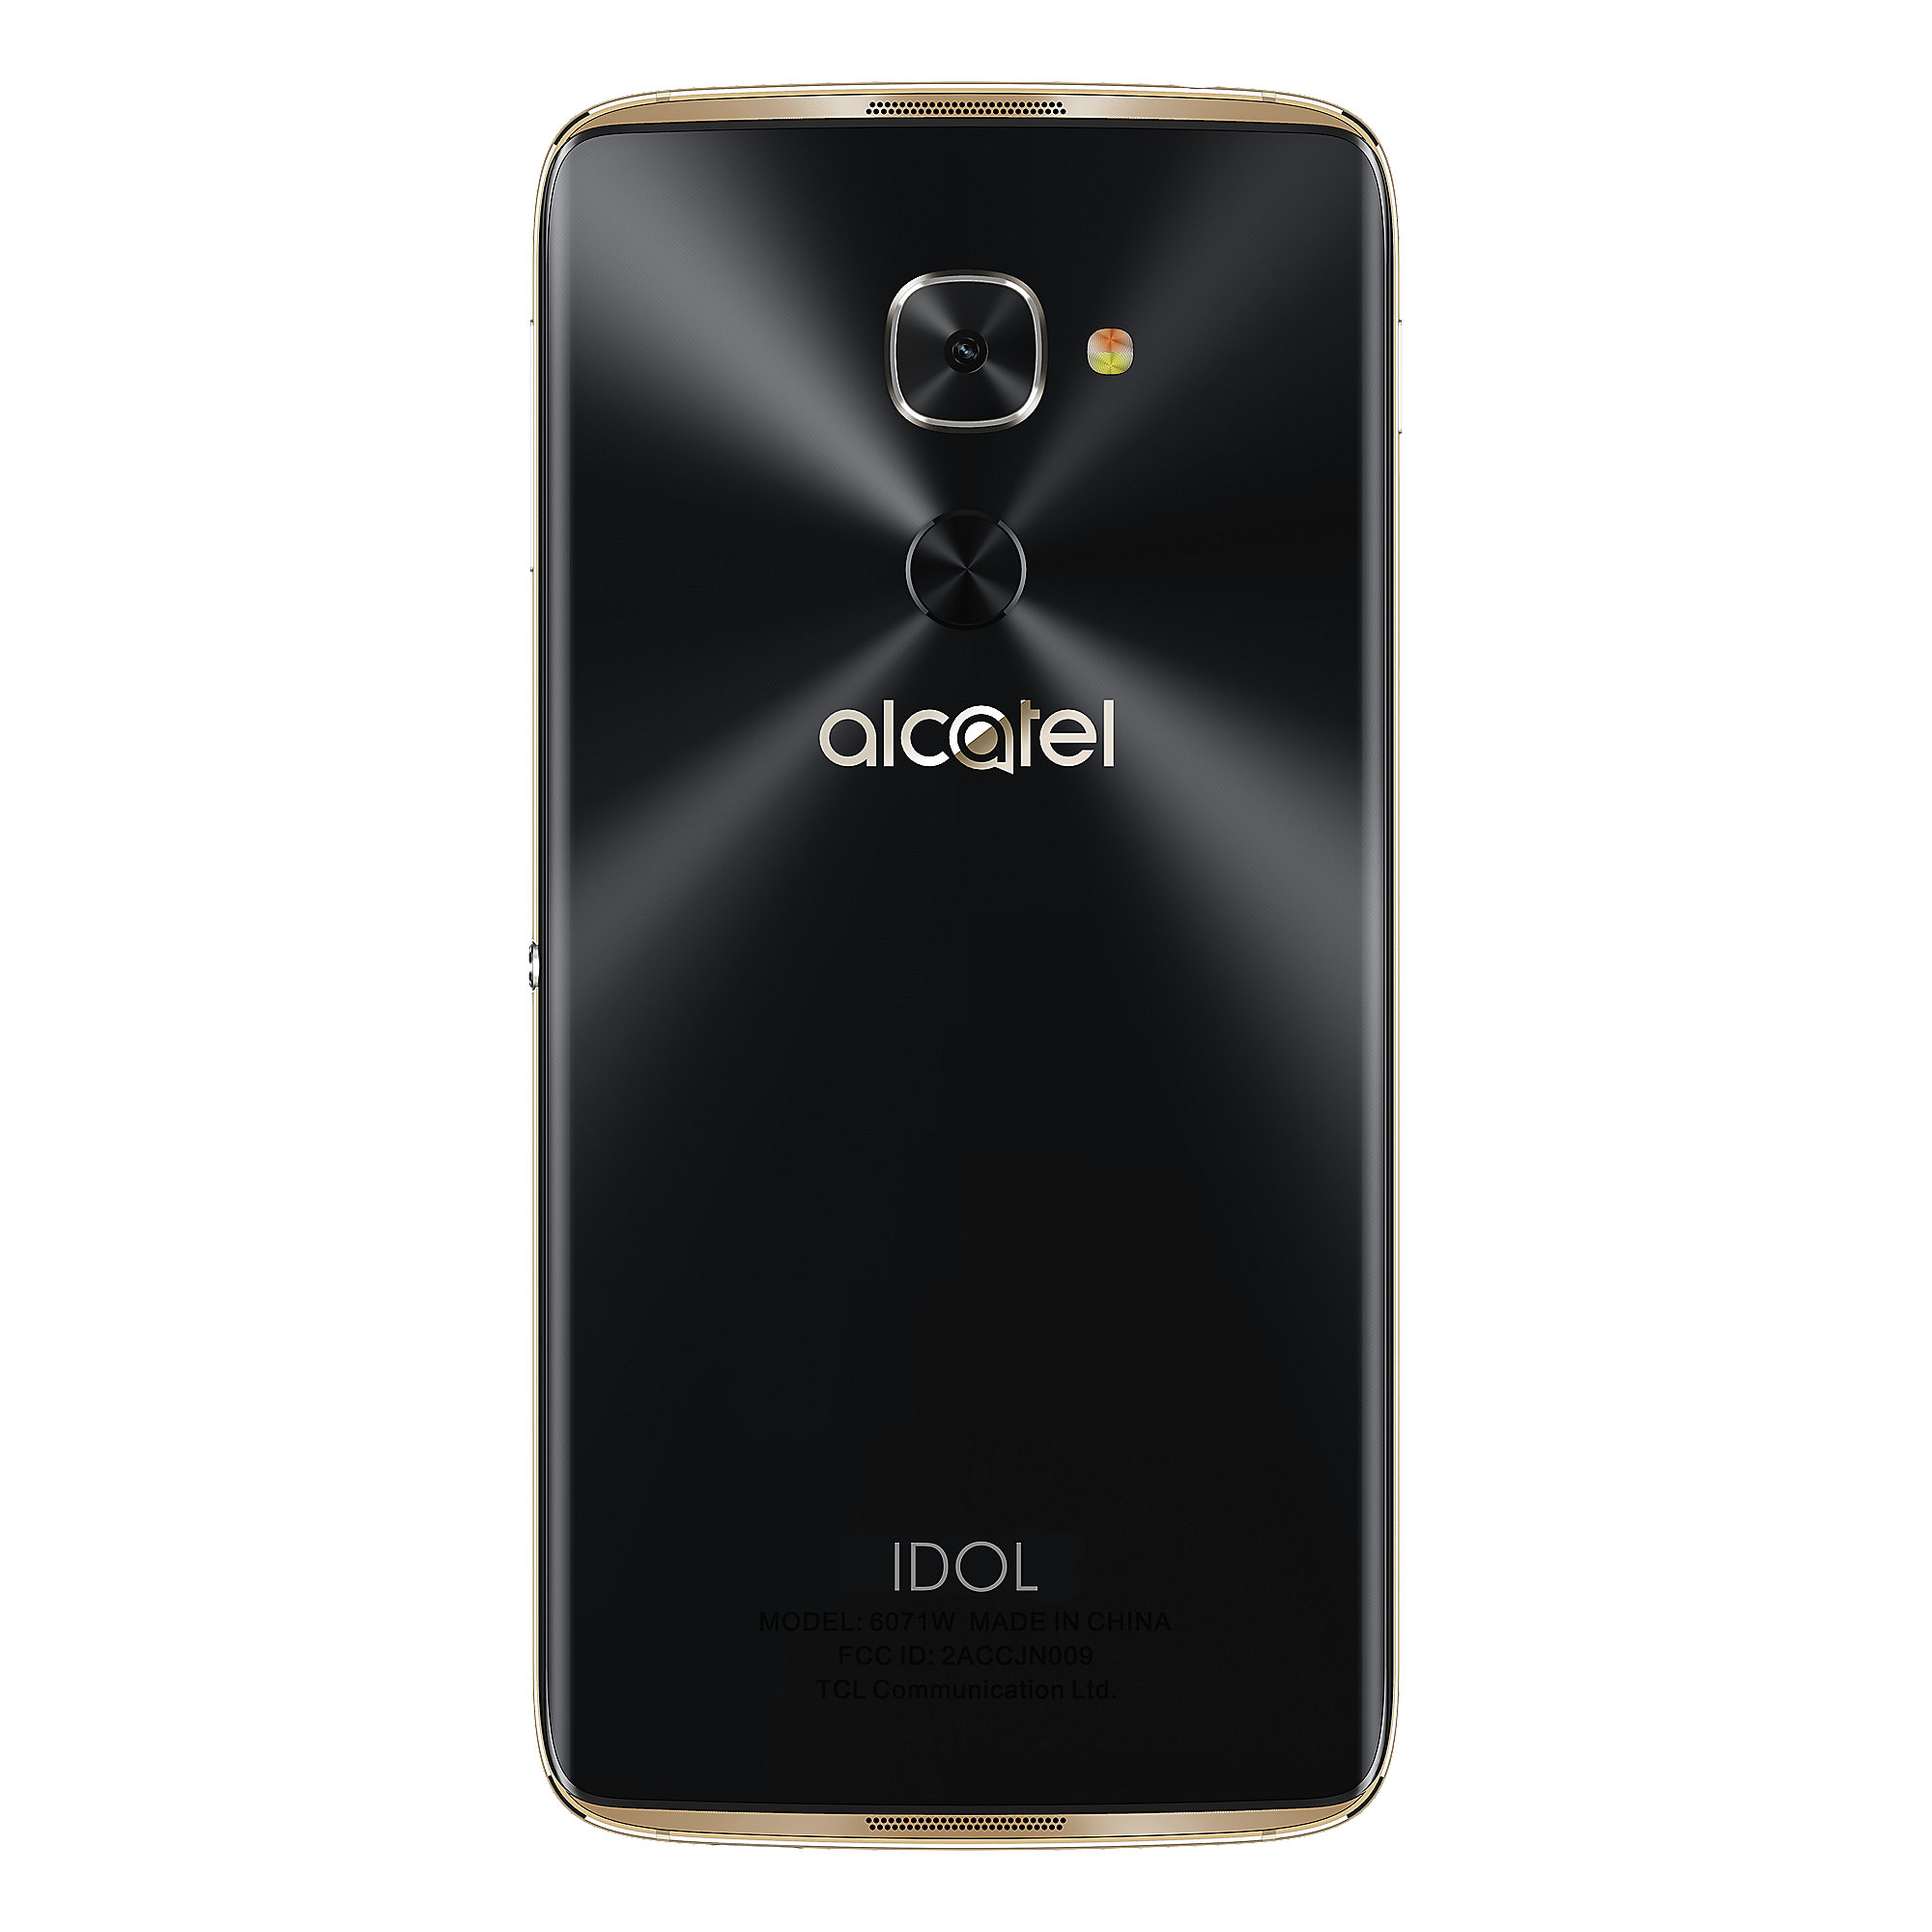 Alcatel Idol 4 Pro 6077X schwarz gold Windows 10 Smartphone